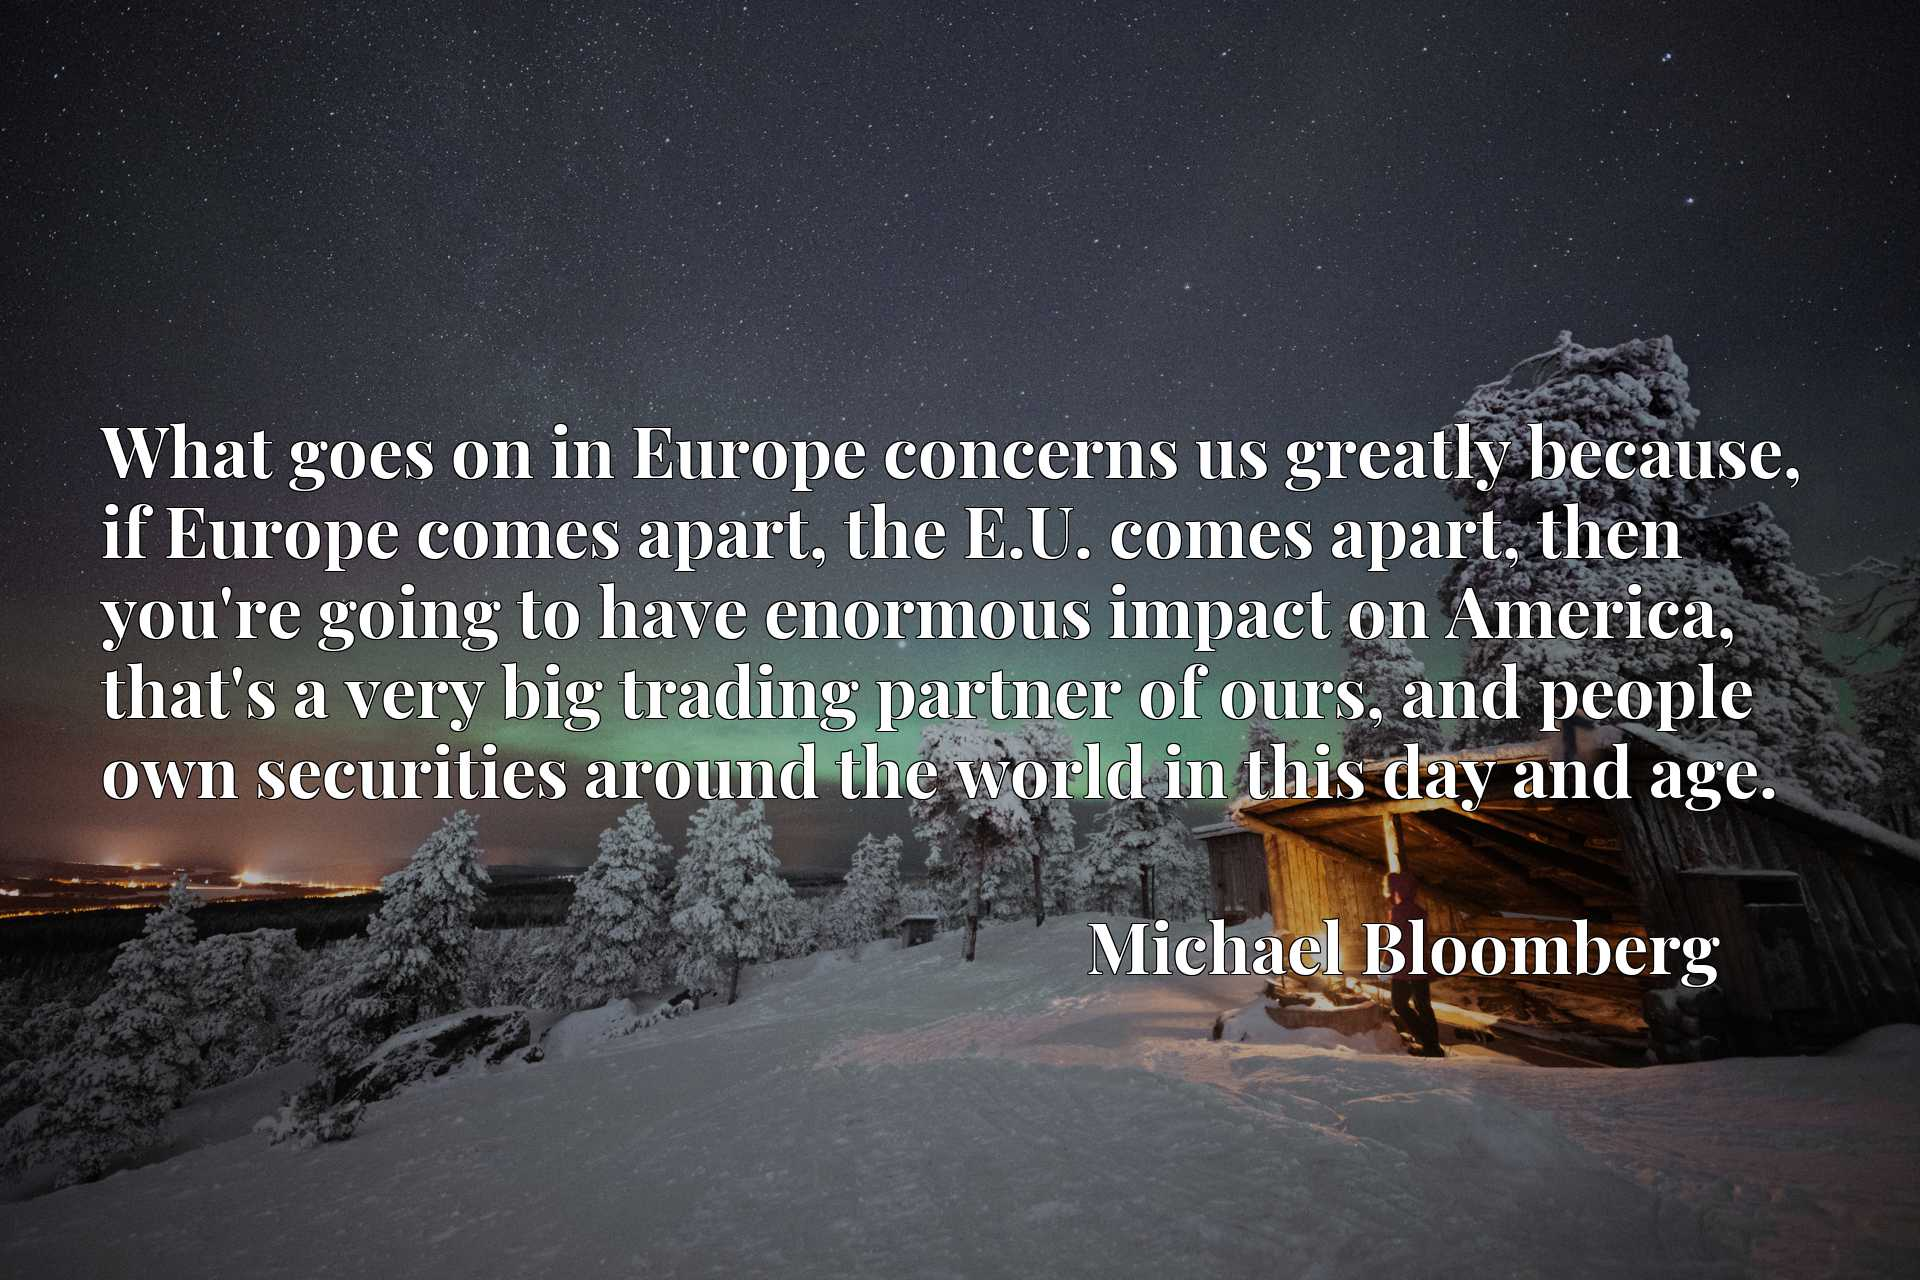 What goes on in Europe concerns us greatly because, if Europe comes apart, the E.U. comes apart, then you're going to have enormous impact on America, that's a very big trading partner of ours, and people own securities around the world in this day and age.